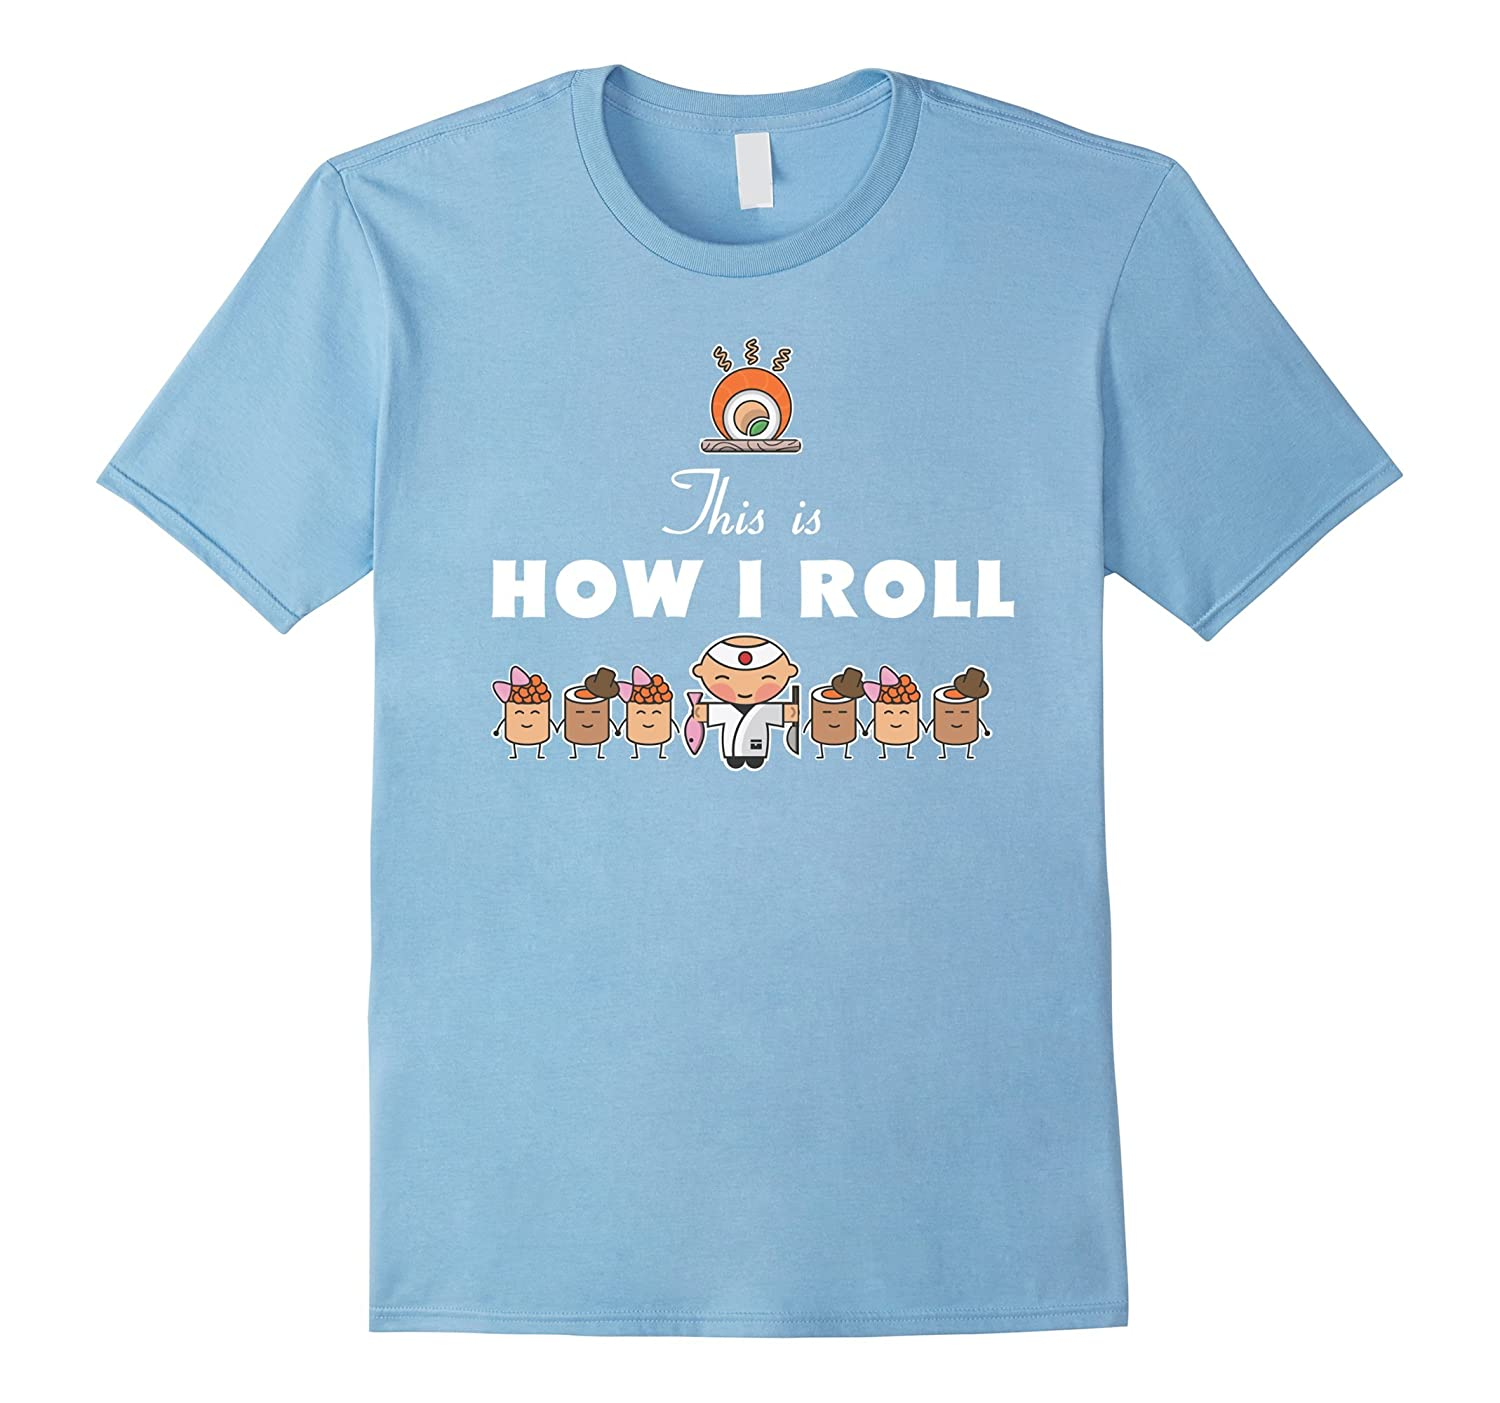 Sushi T-shirt – This is how I roll